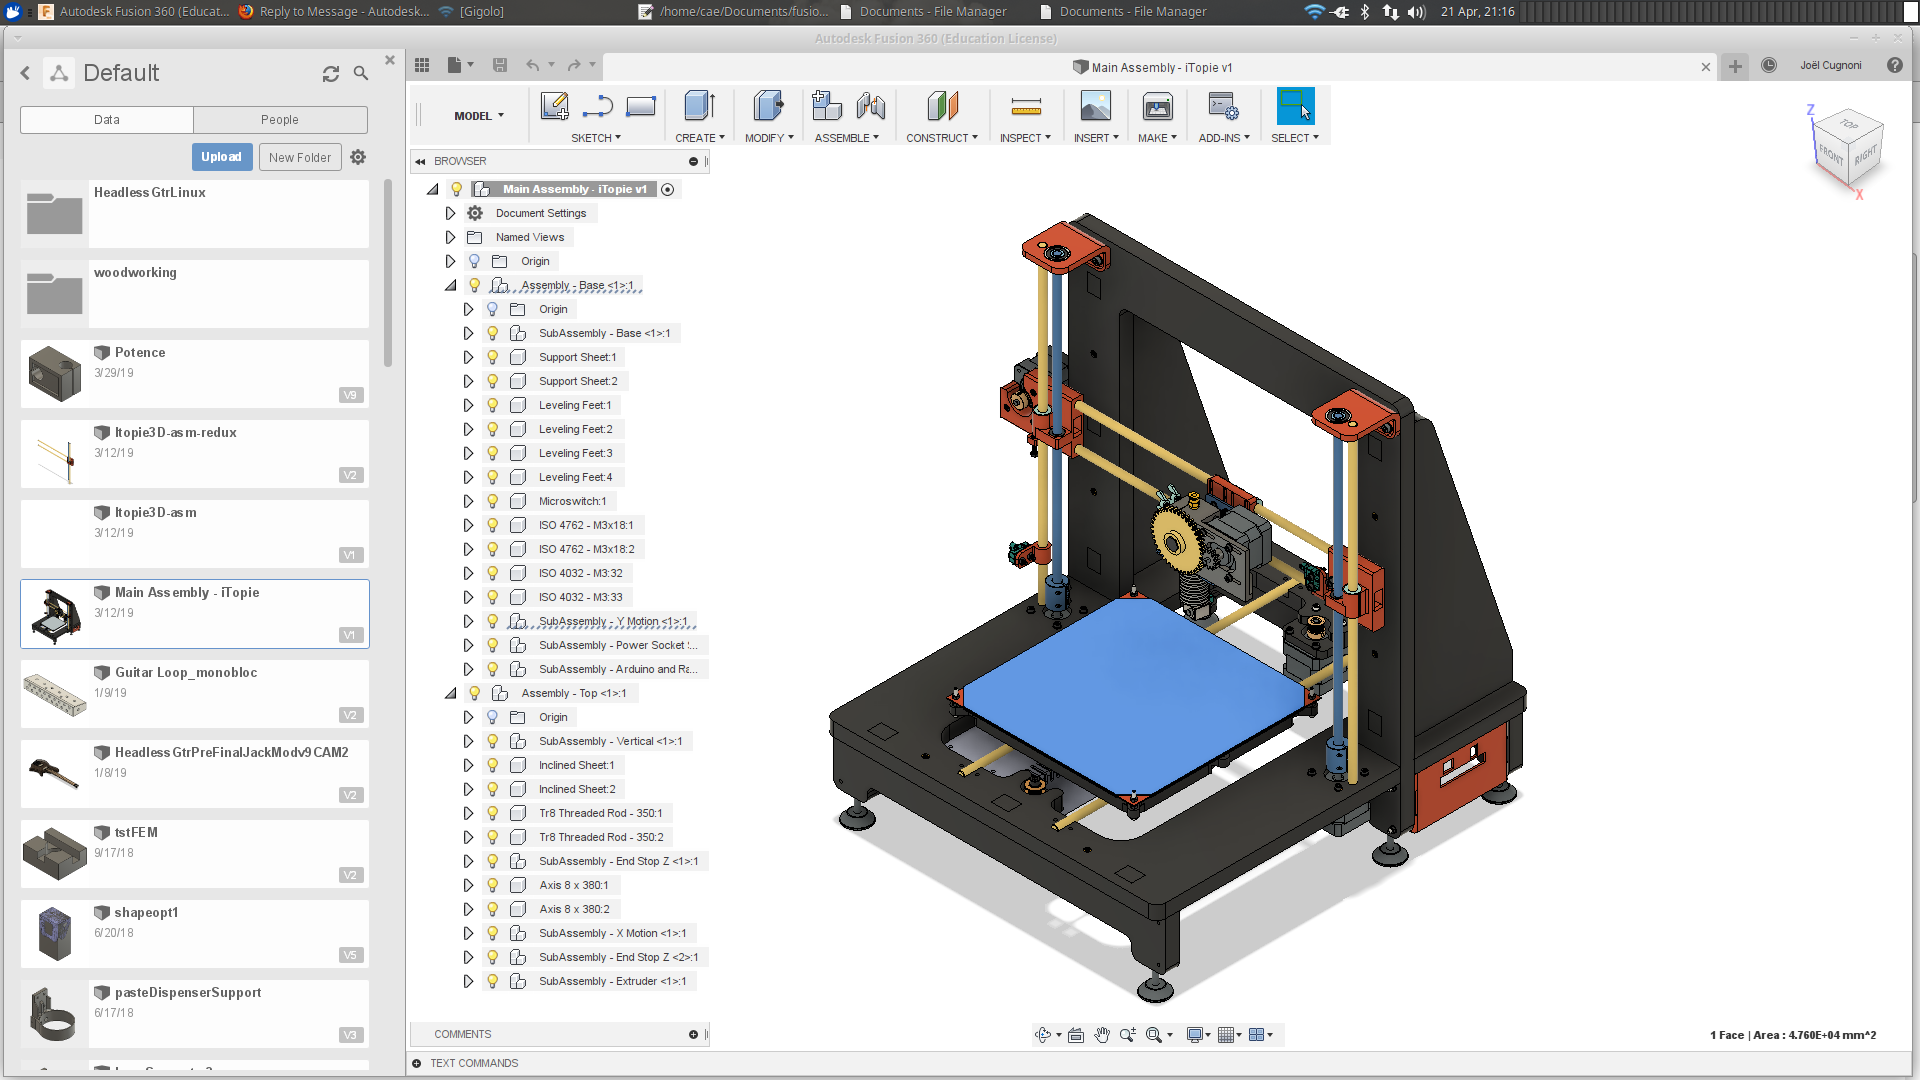 Running Fusion 360 installer on Linux through Proton libraries